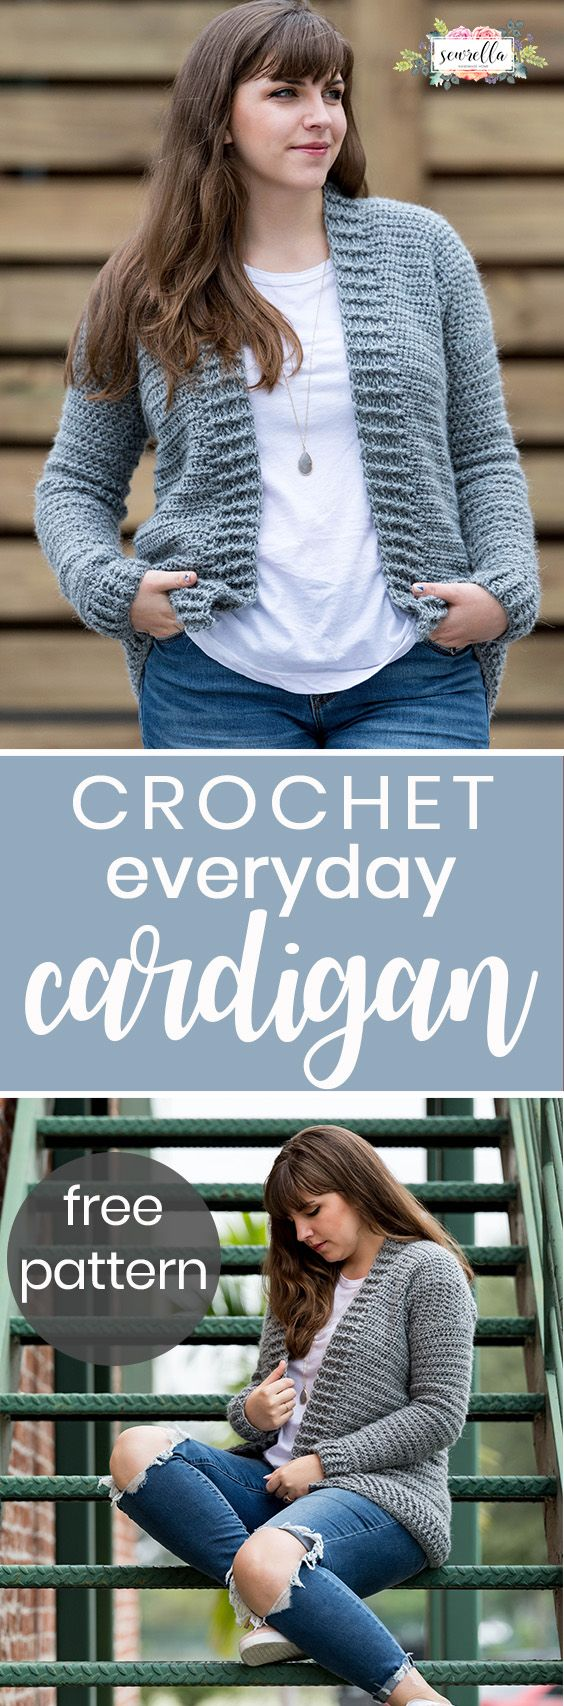 Crochet the easy everyday cardigan with all half double and double crochets! Sizes XS-3XL included in this free sweater pattern